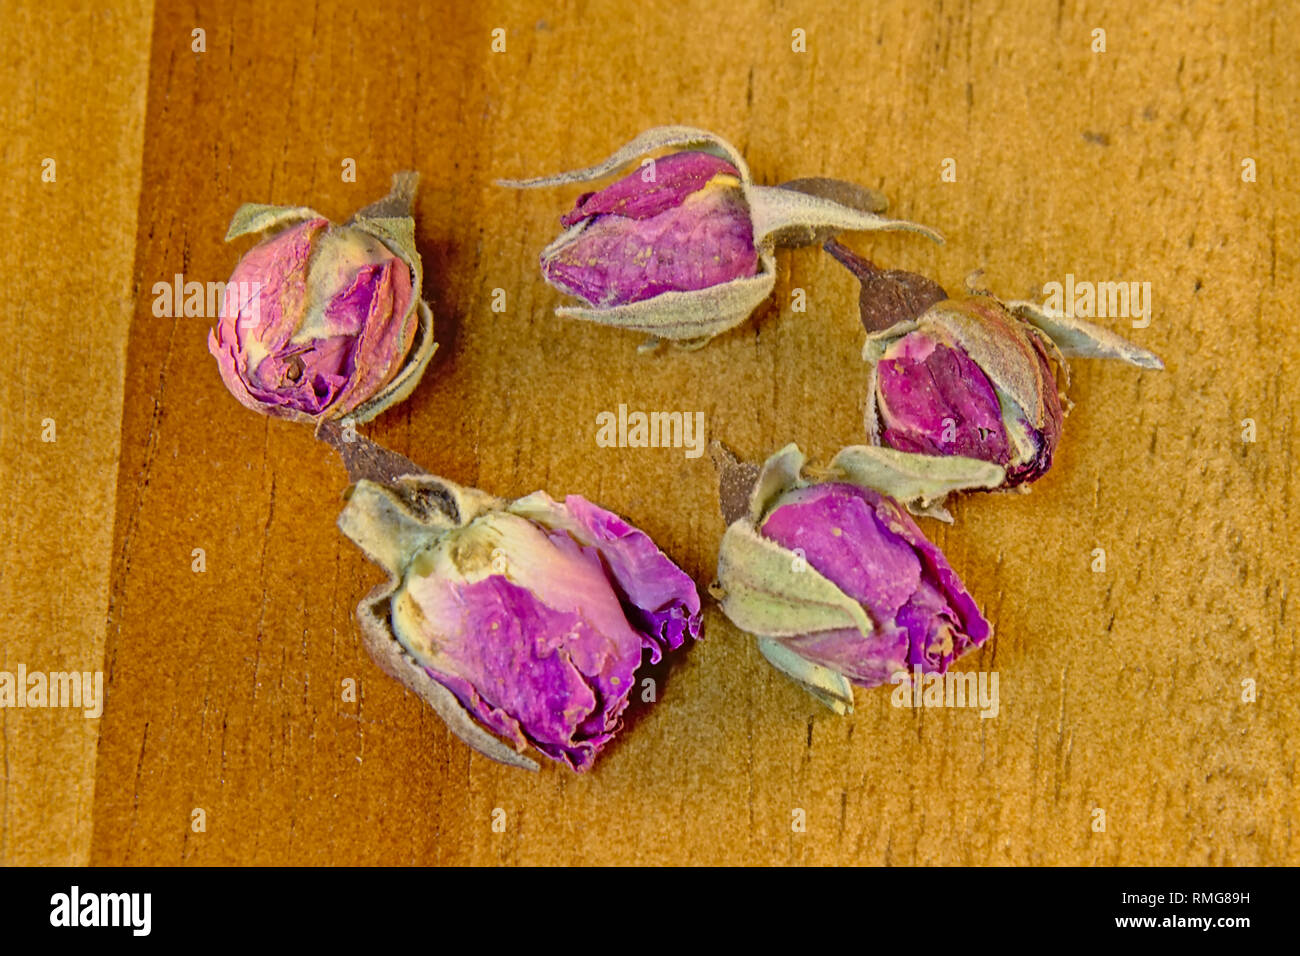 Dried pink Rose buds on wood background, overhead view - Rosaceae - Stock Image